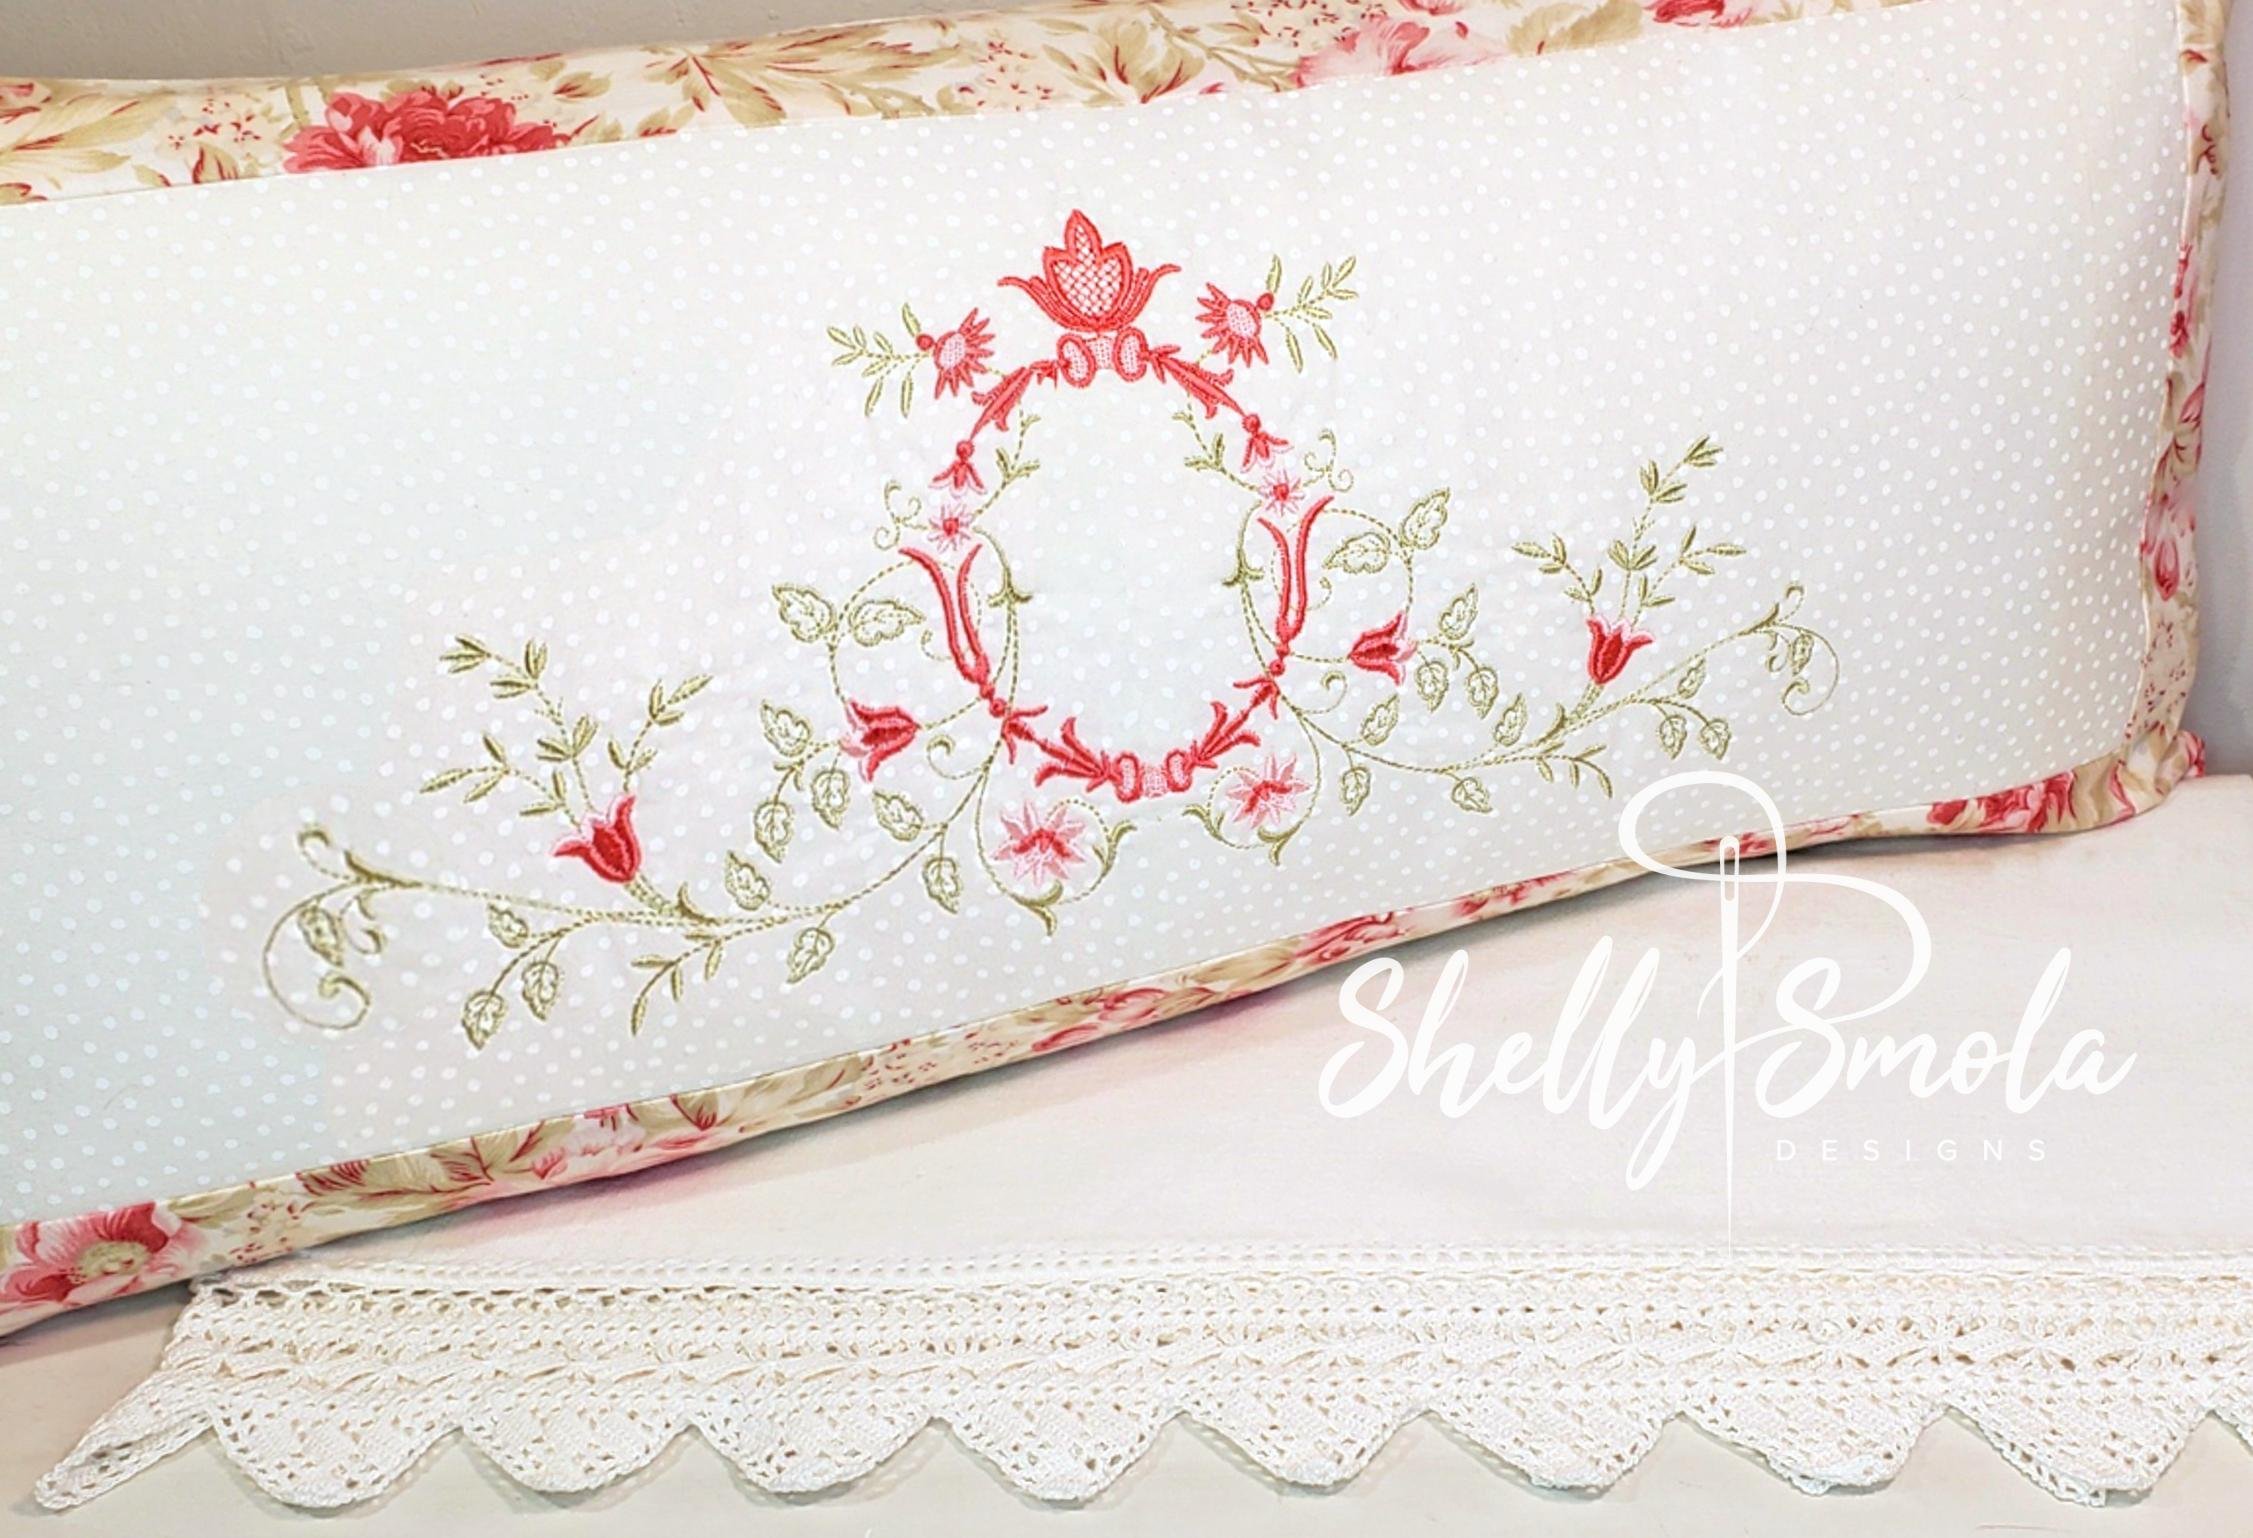 Cinderella Vines 1 Pillow by Shelly Smola